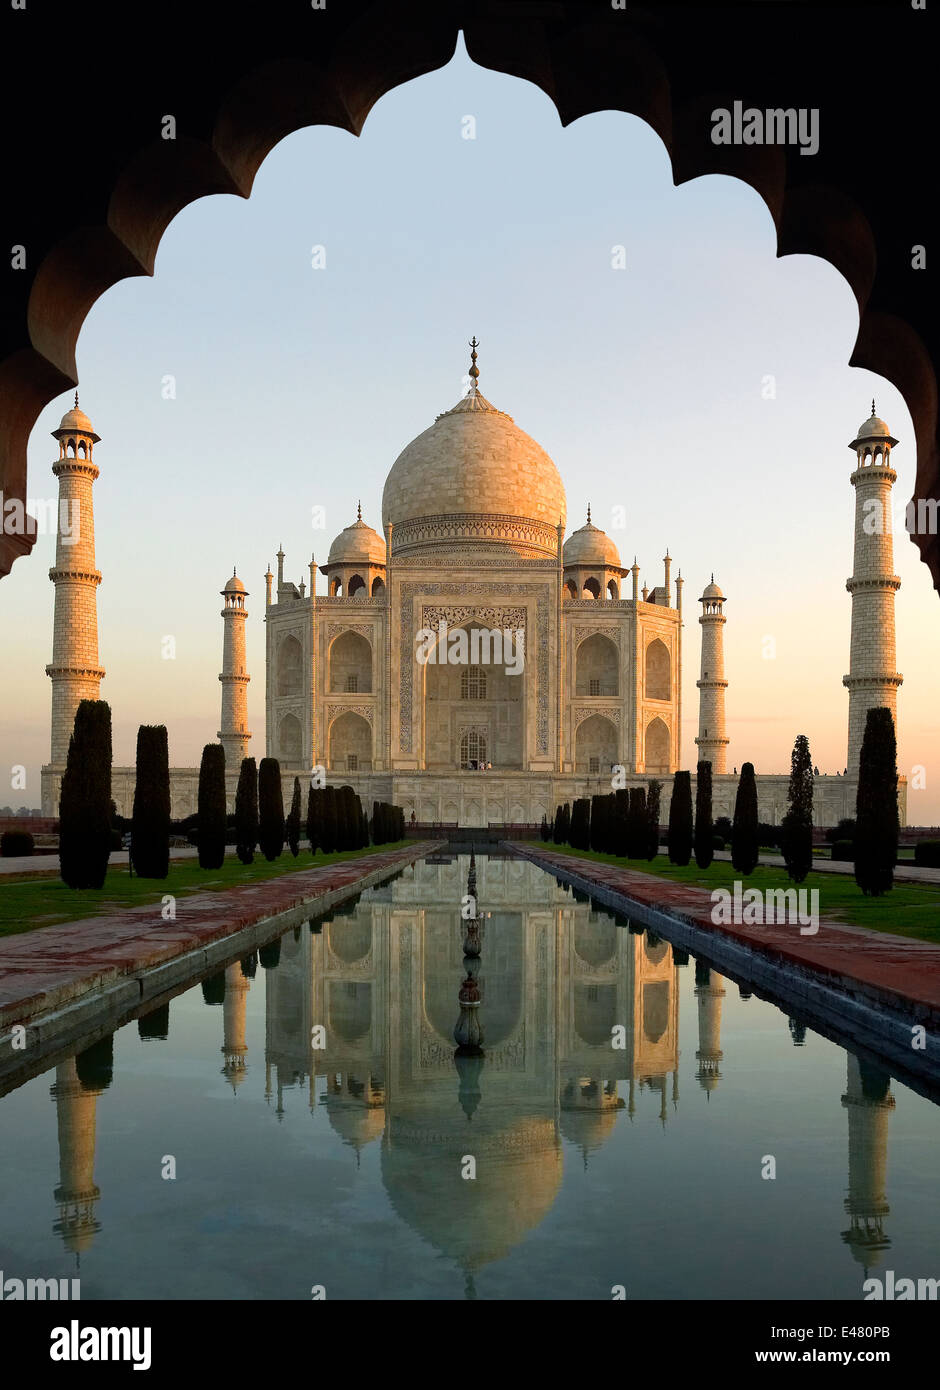 Taj Mahal all'Alba - Agra - India Immagini Stock